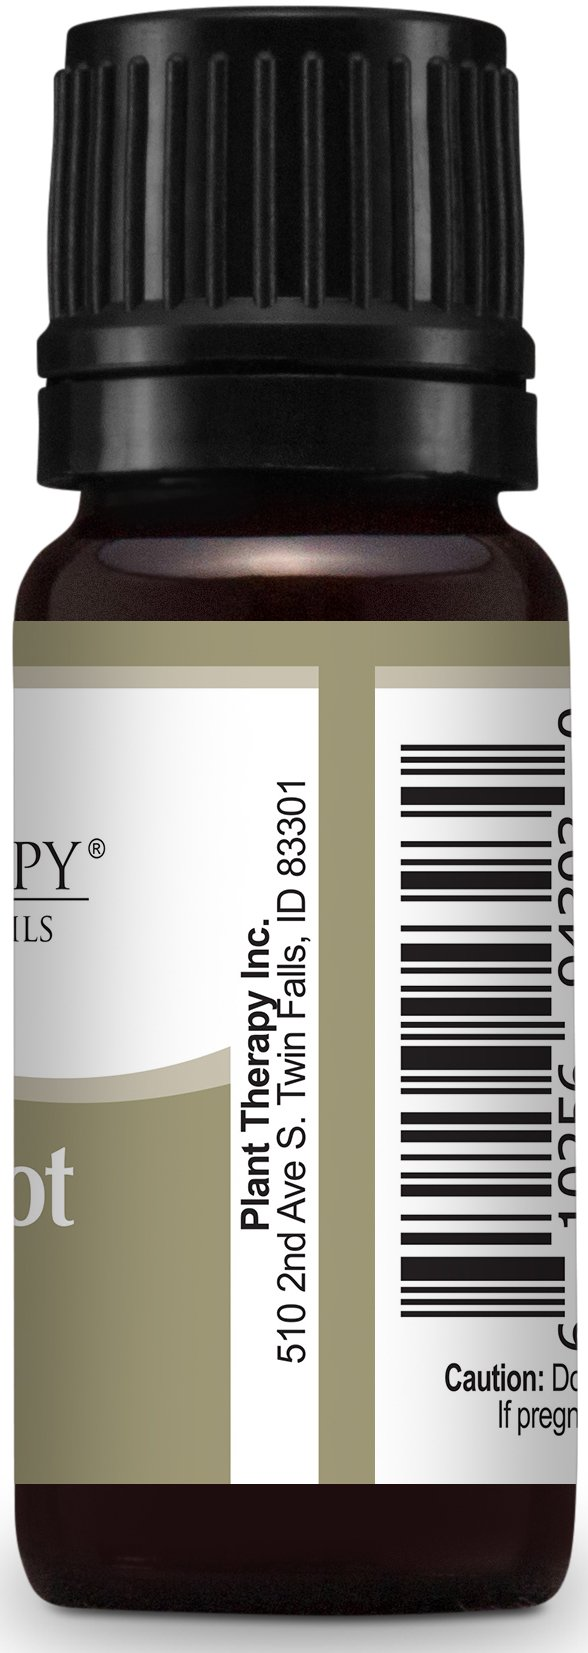 Plant Therapy Ginger Root CO2 Extract. 100% Pure, Undiluted, Therapeutic Grade. 10 ml (1/3 oz). by Plant Therapy (Image #4)